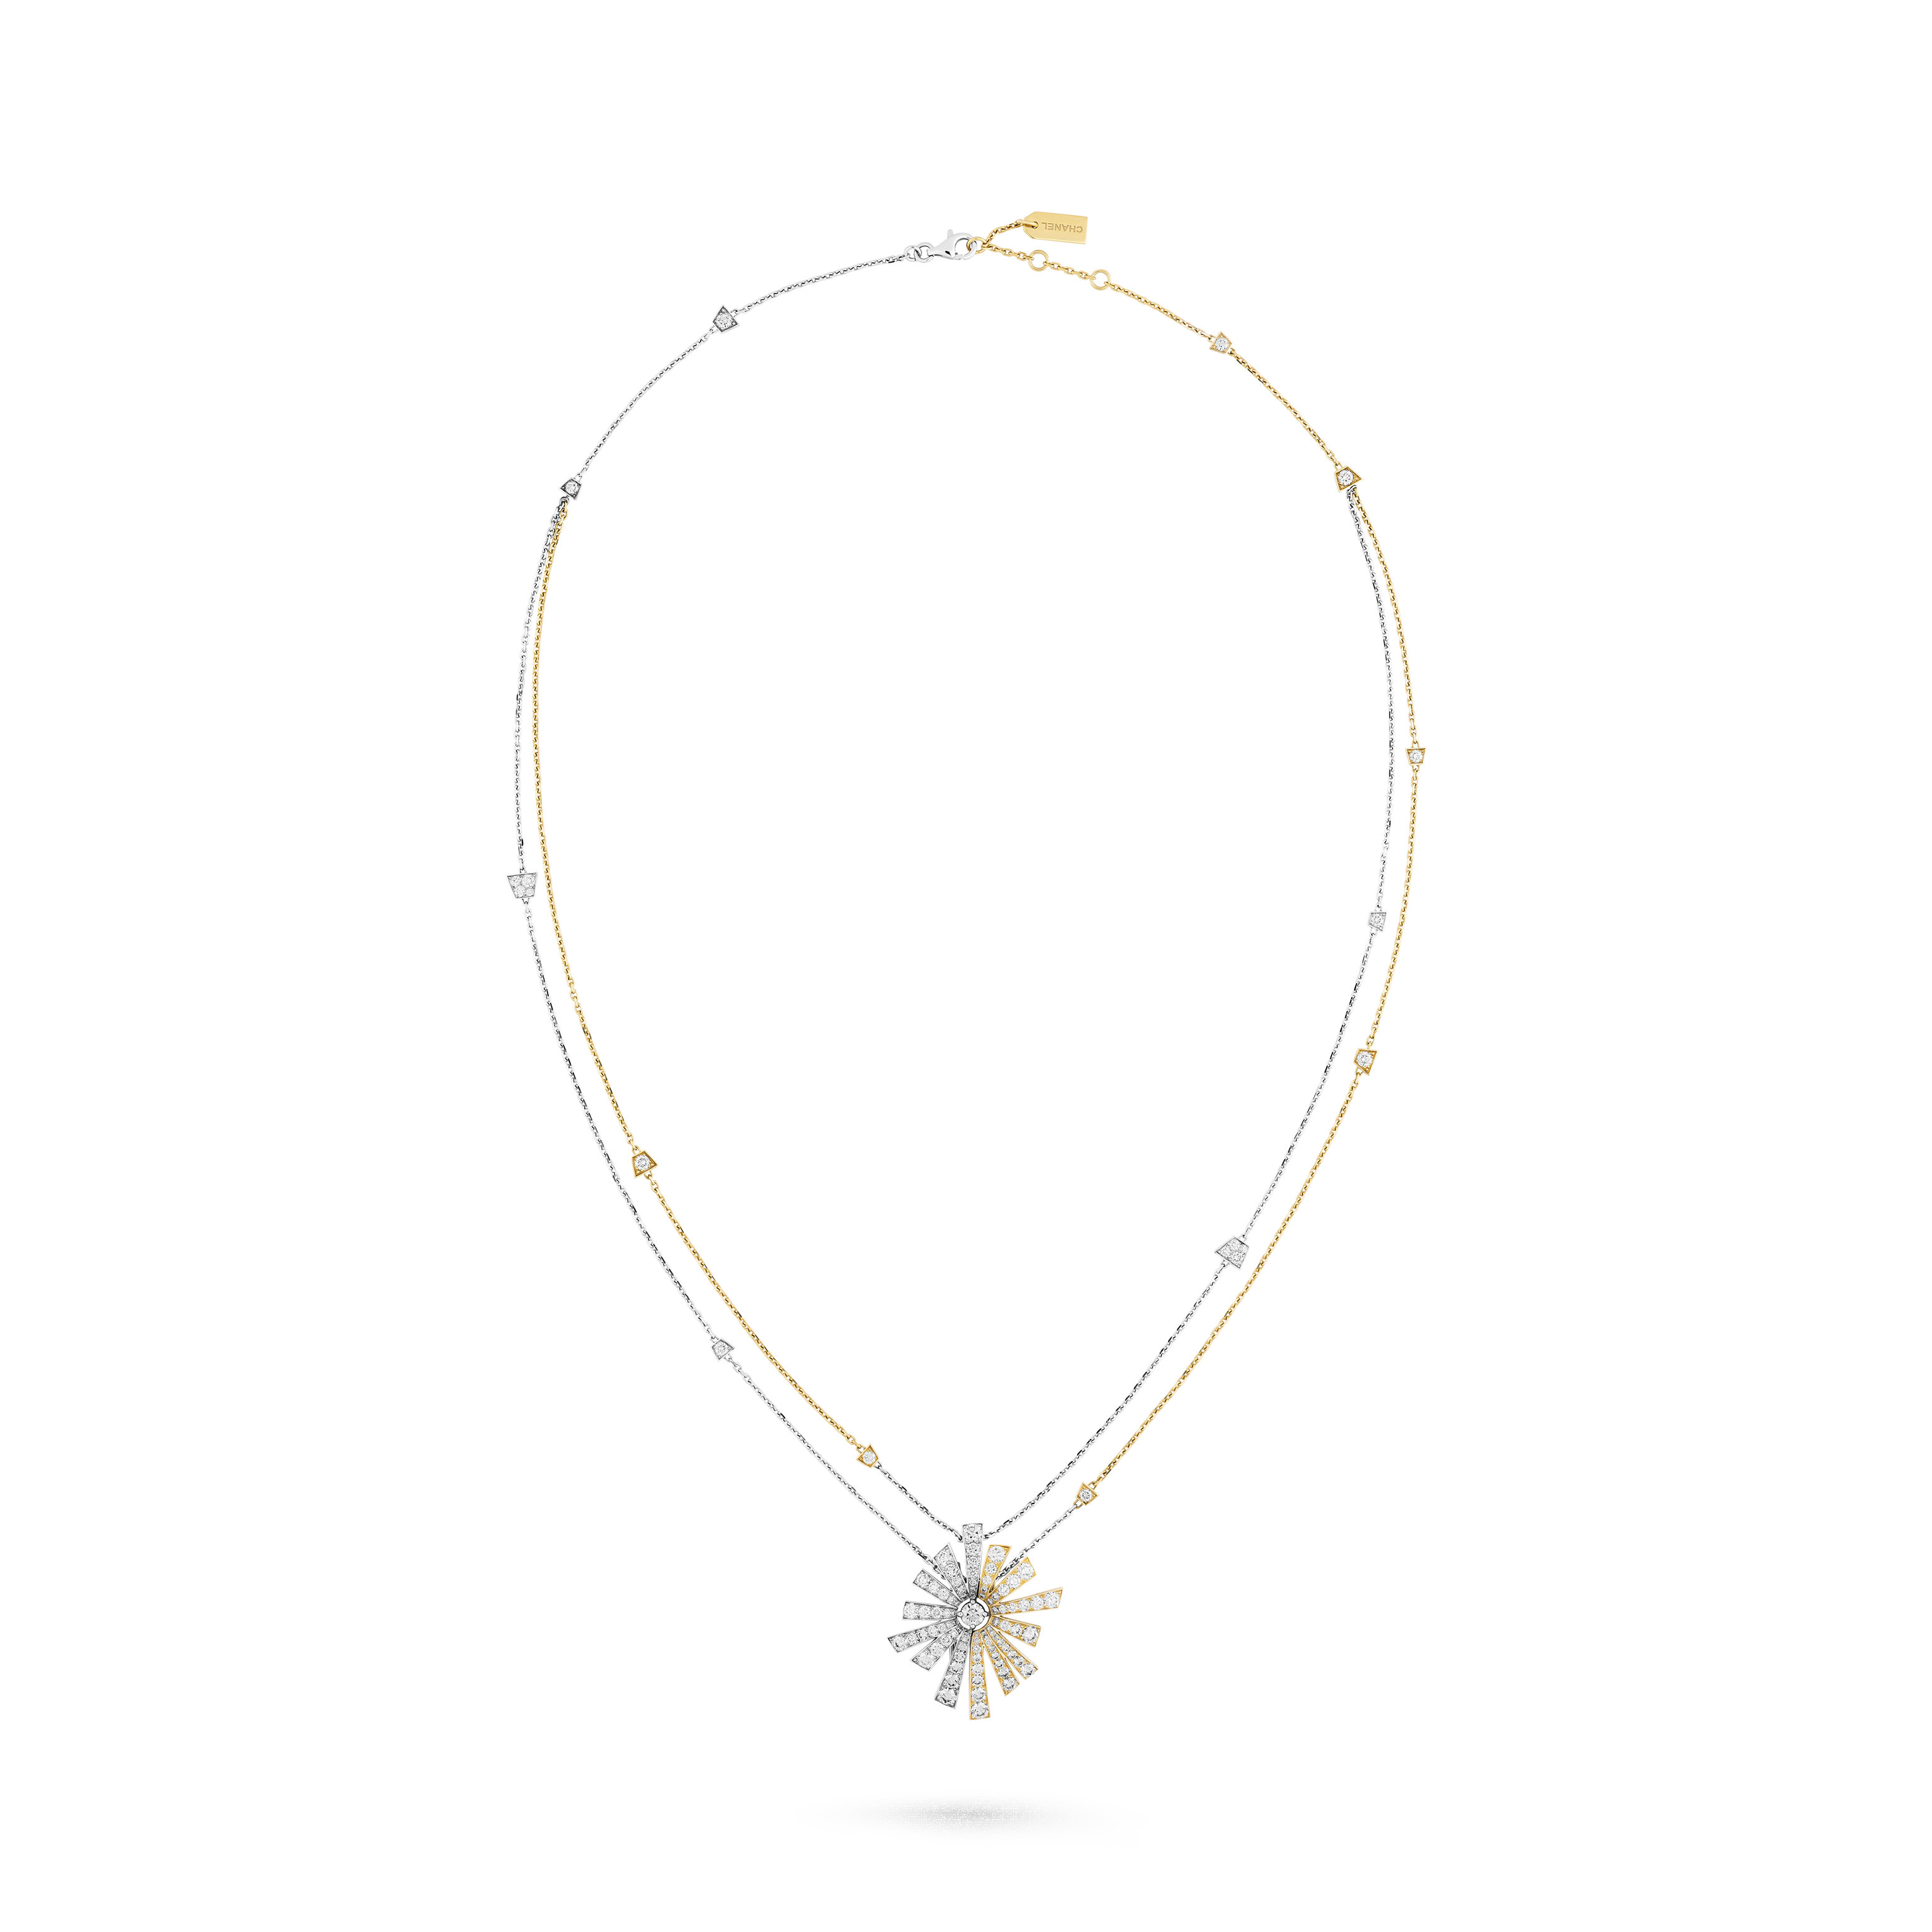 Soleil de CHANEL transformable necklace - 18K white and yellow gold, diamonds - CHANEL - Default view - see standard sized version